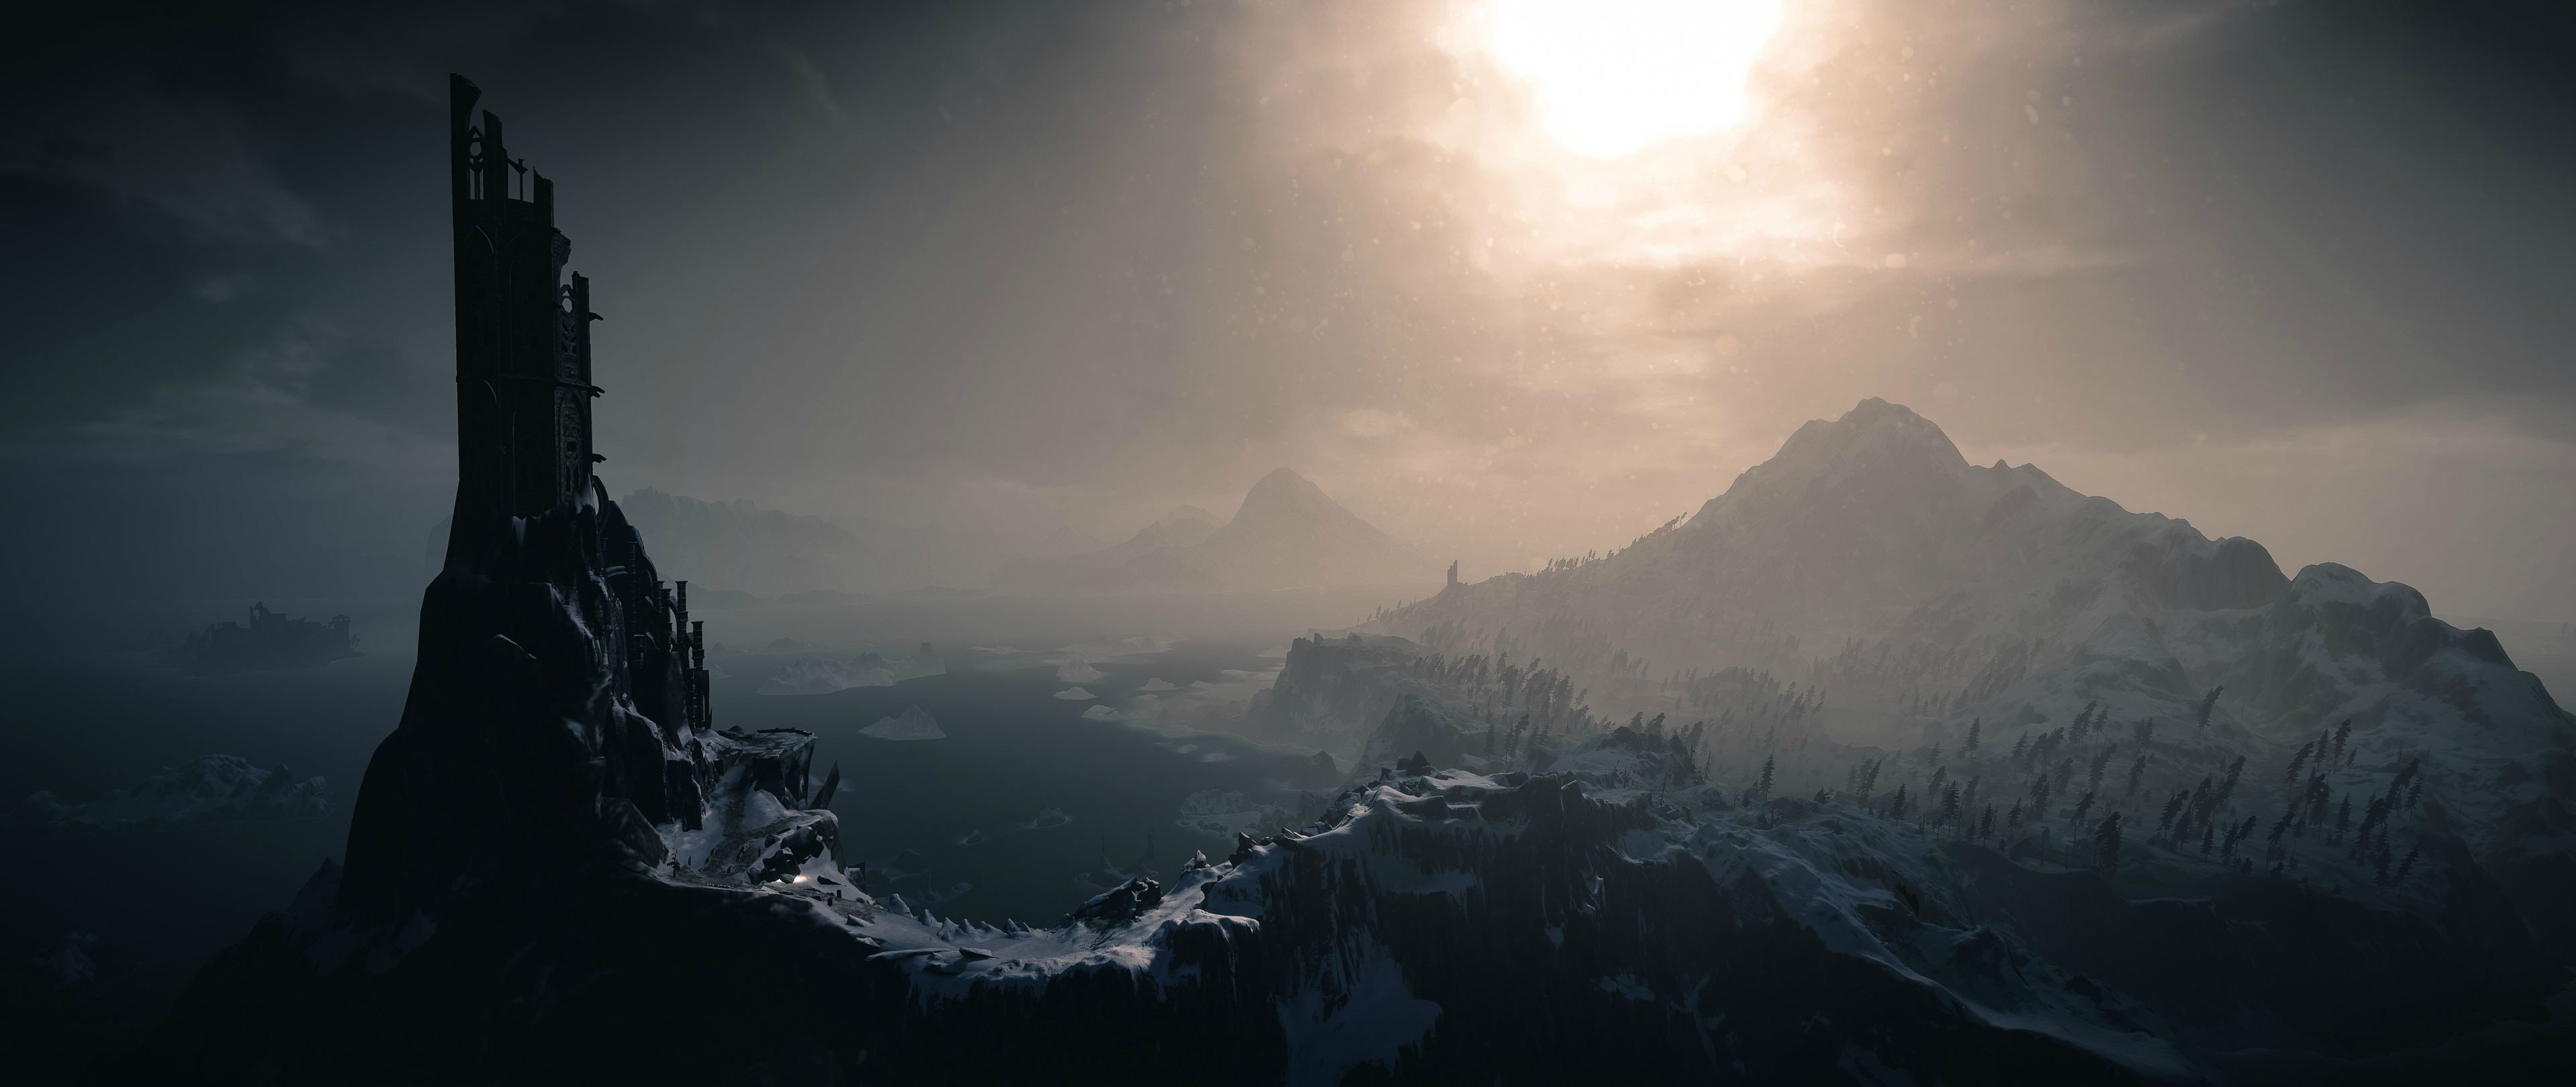 Witcher 3 4k wallpaper 52 images - The witcher wallpaper 4k ...